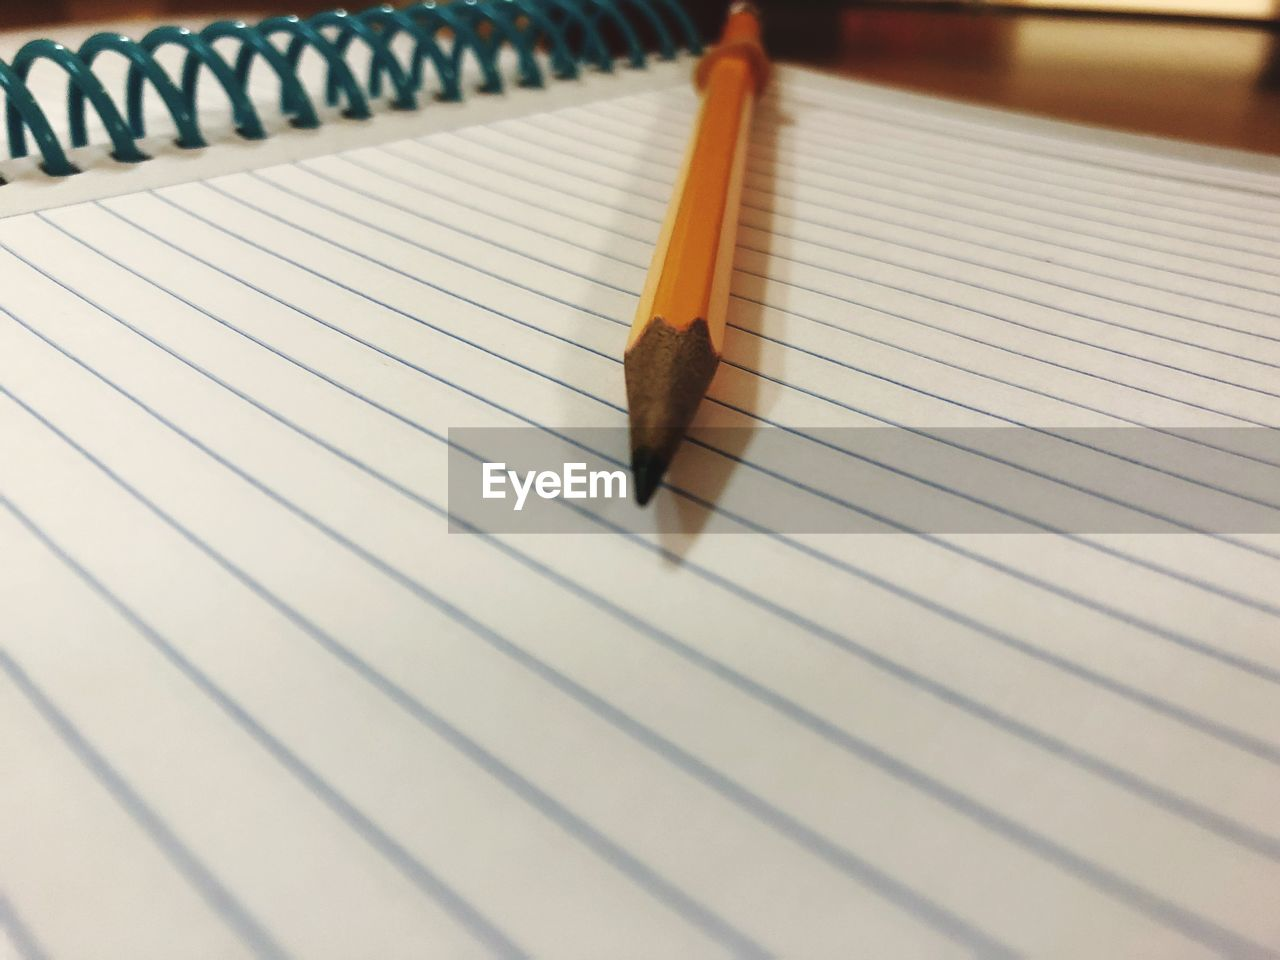 Close-up of pencil with note pad on table